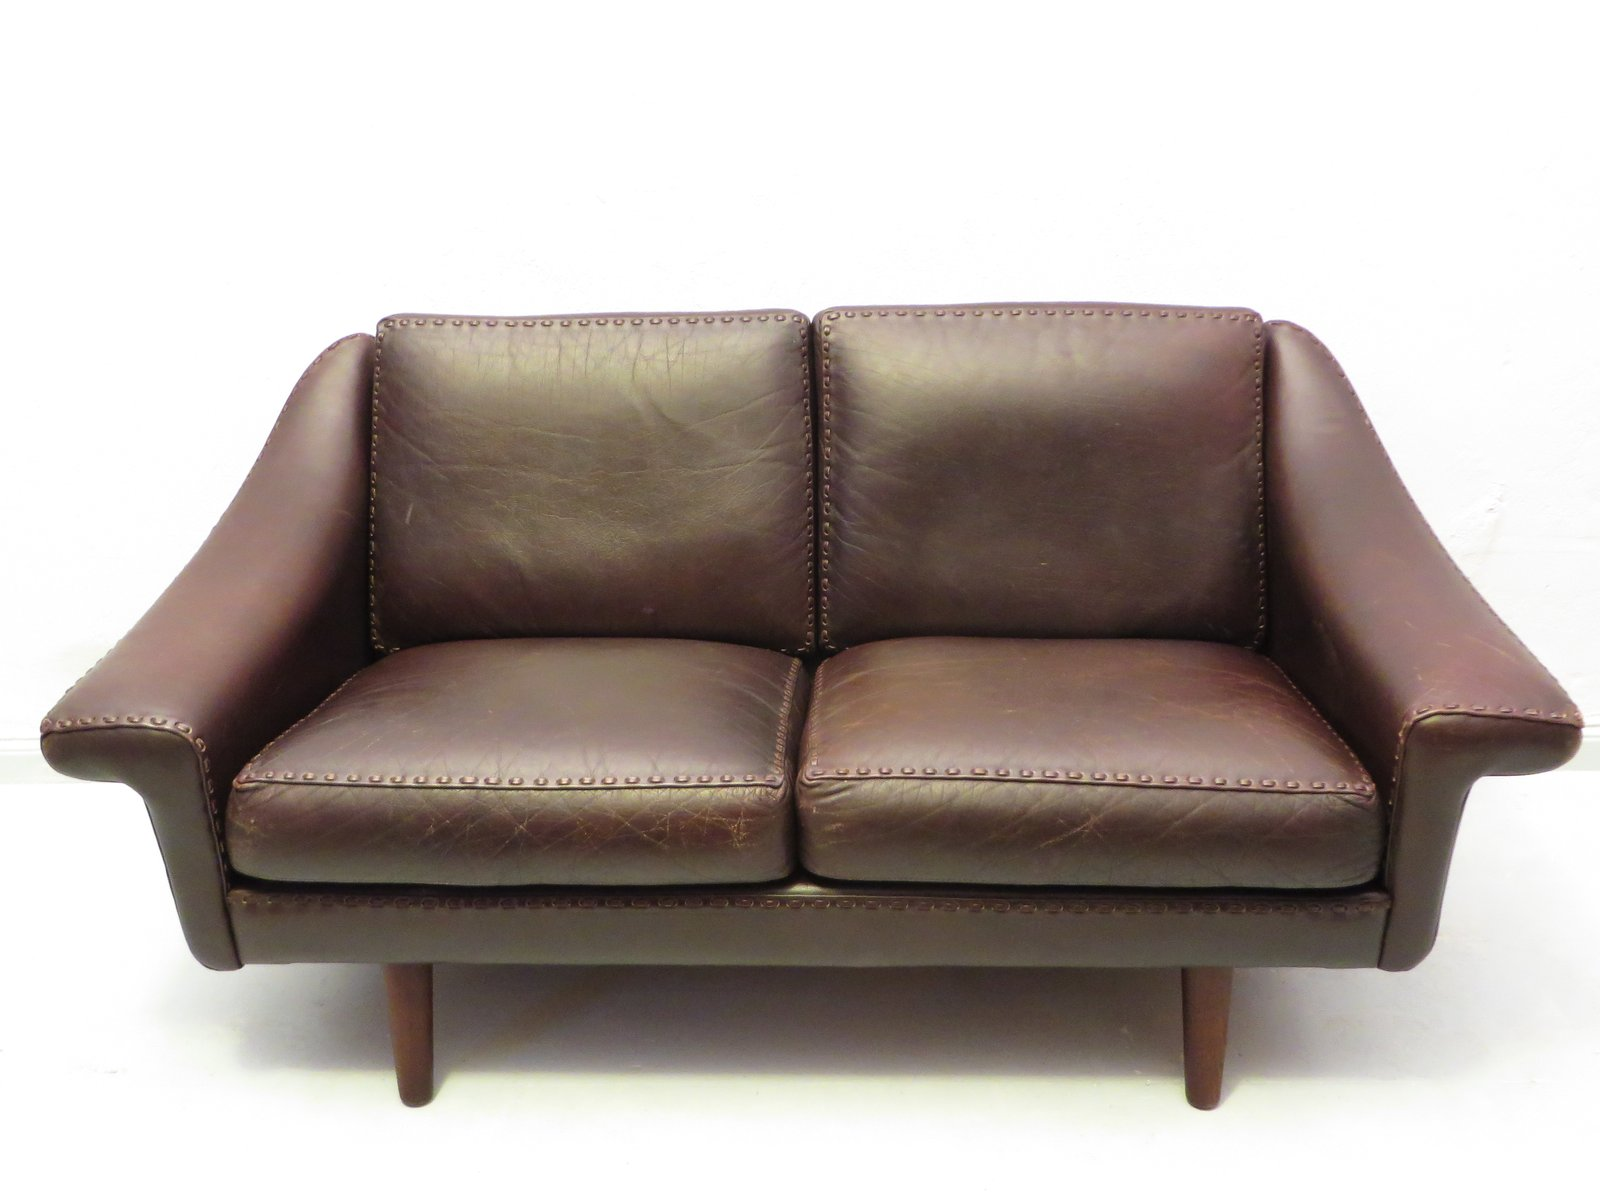 Matador Leather Sofa by Aage Christensen for Erhardsen and